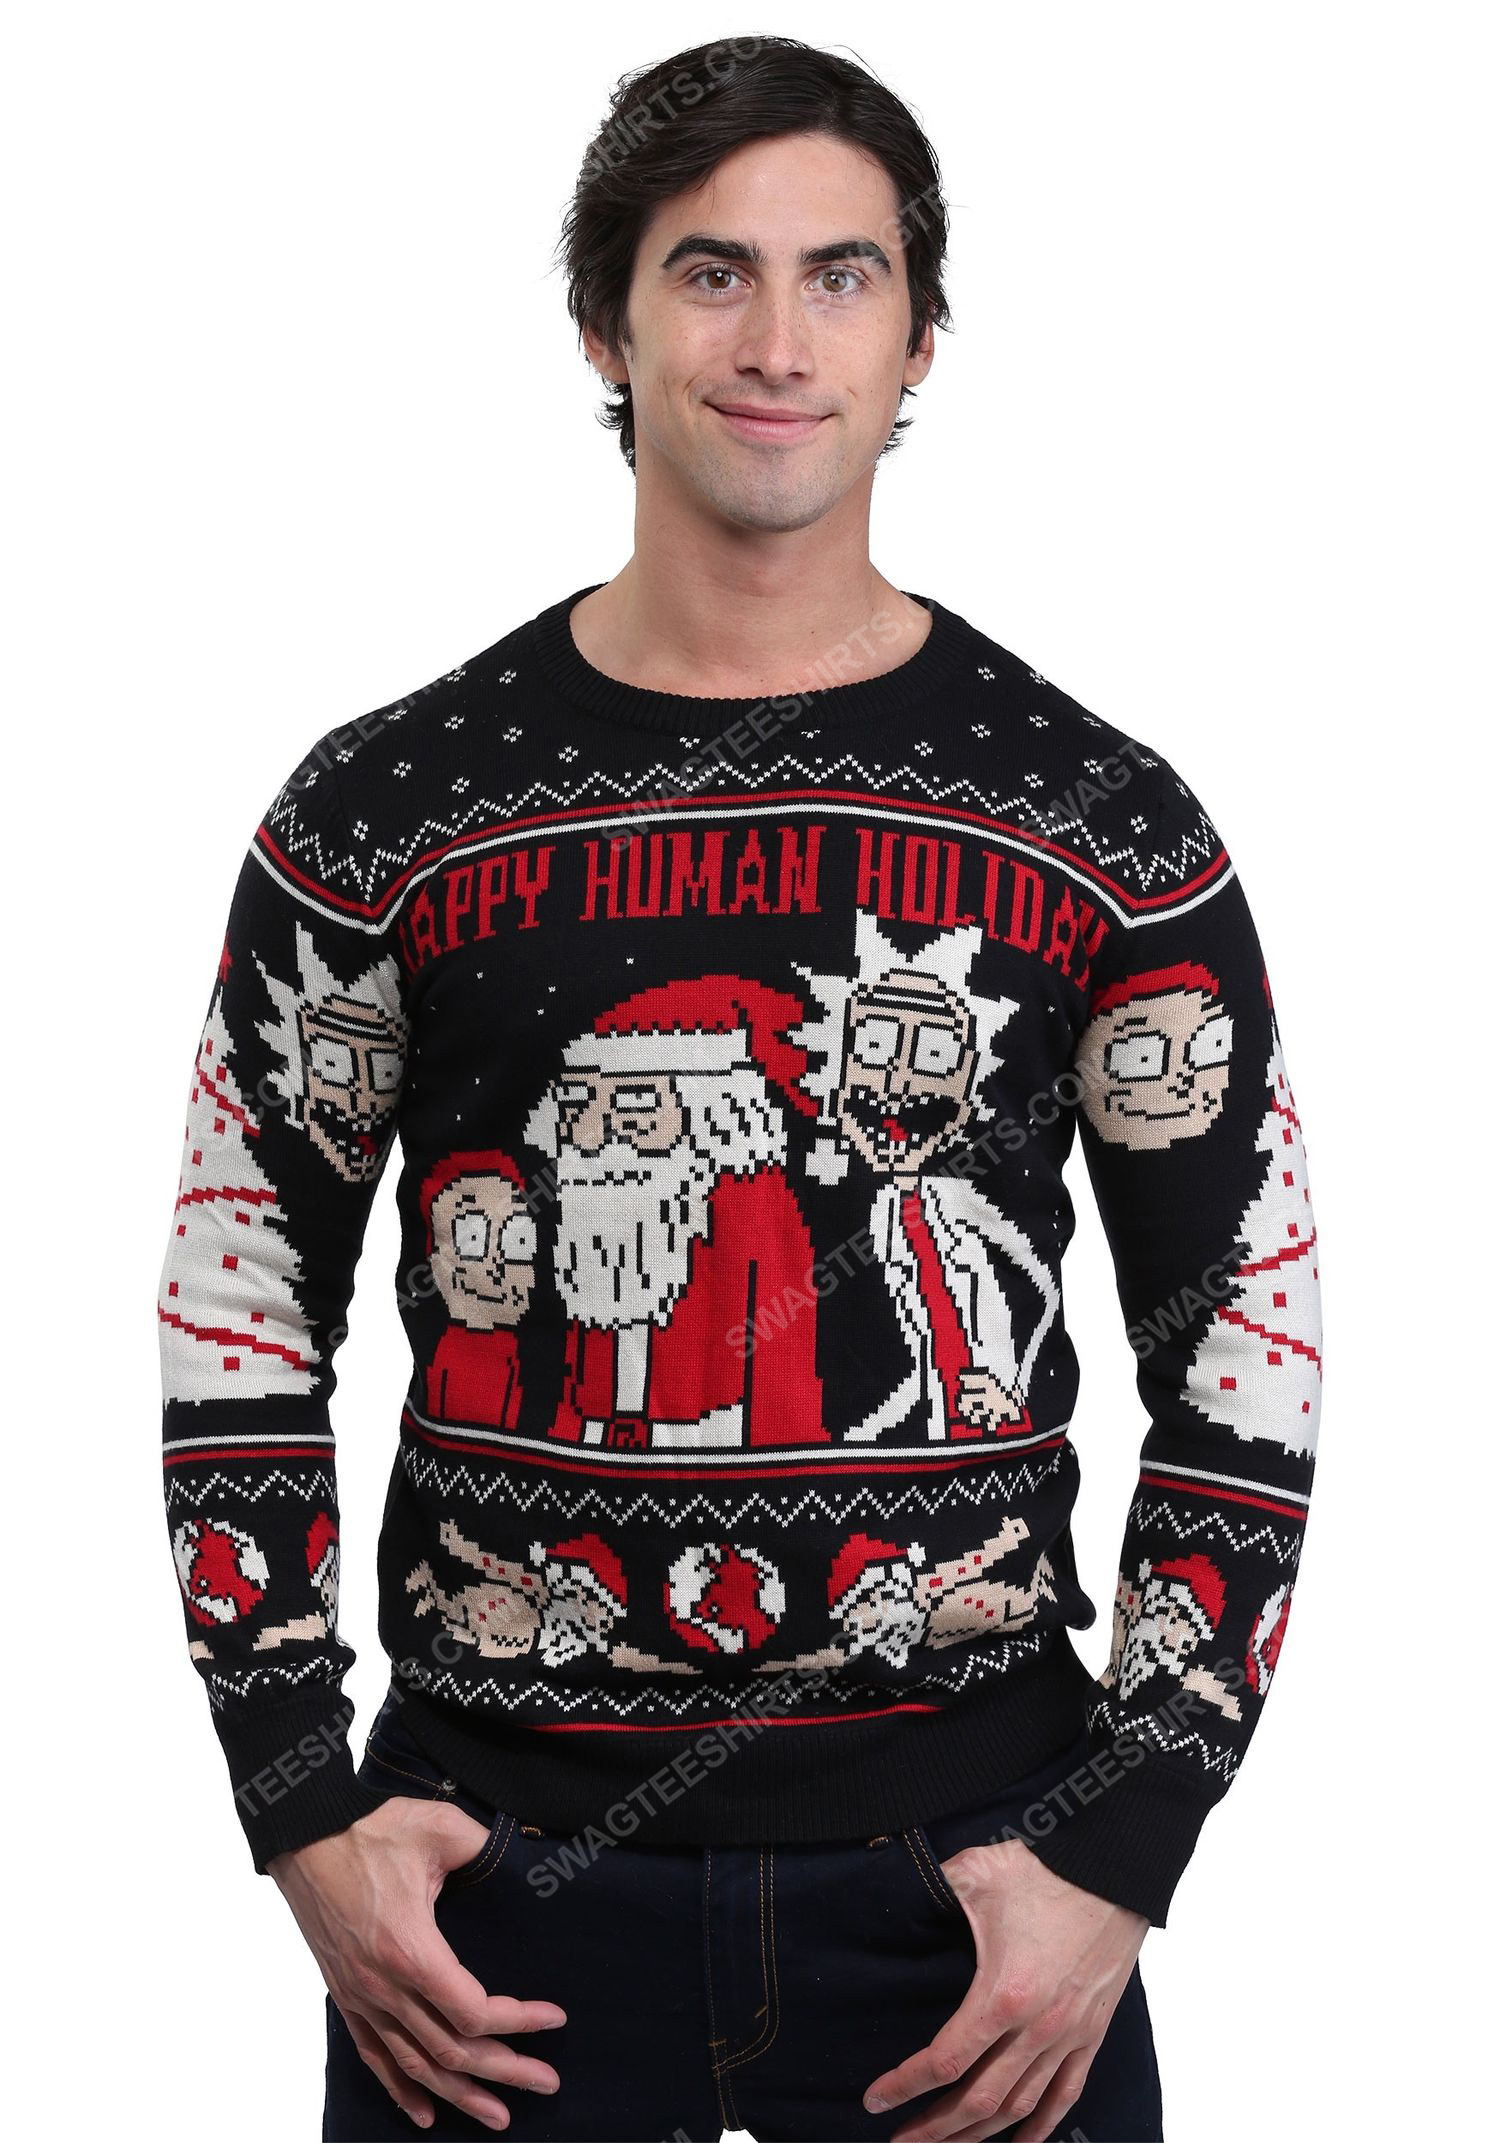 Tv show rick and morty happy human holiday ugly christmas sweater 2